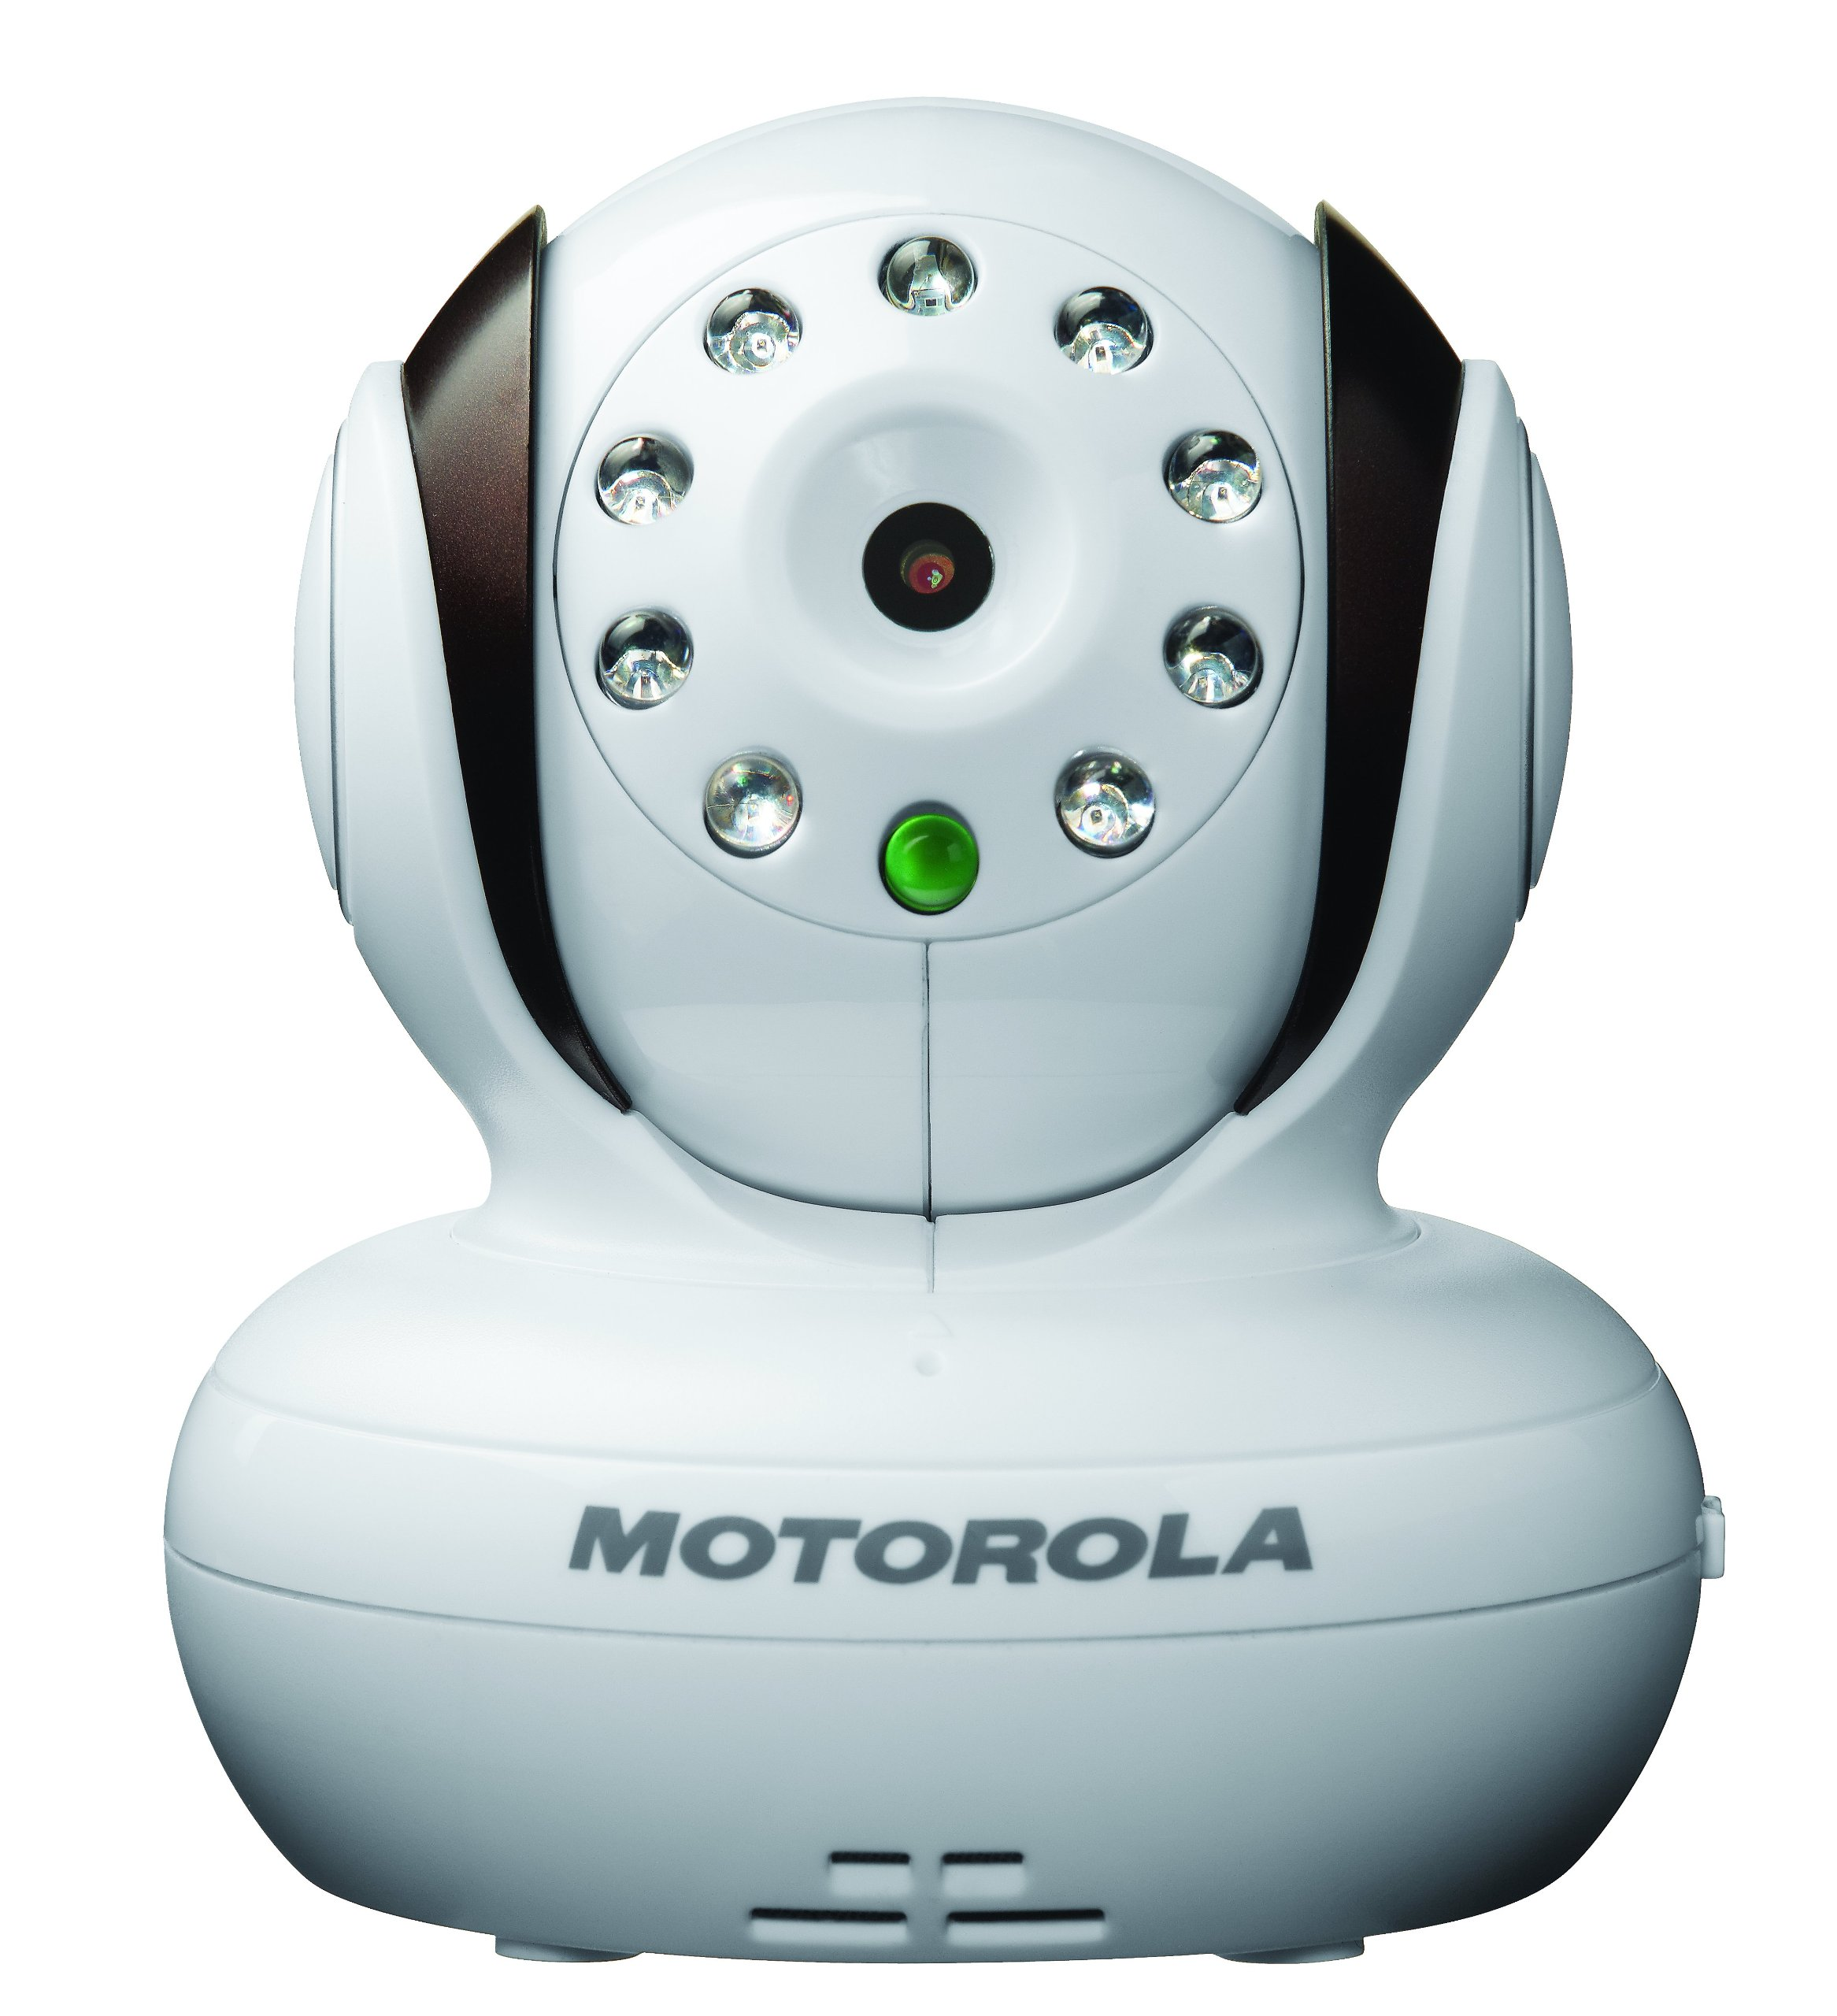 Motorola Additional Camera for Motorola MBP33 and MBP36 Baby Monitor,Brown with White by Motorola (Image #1)